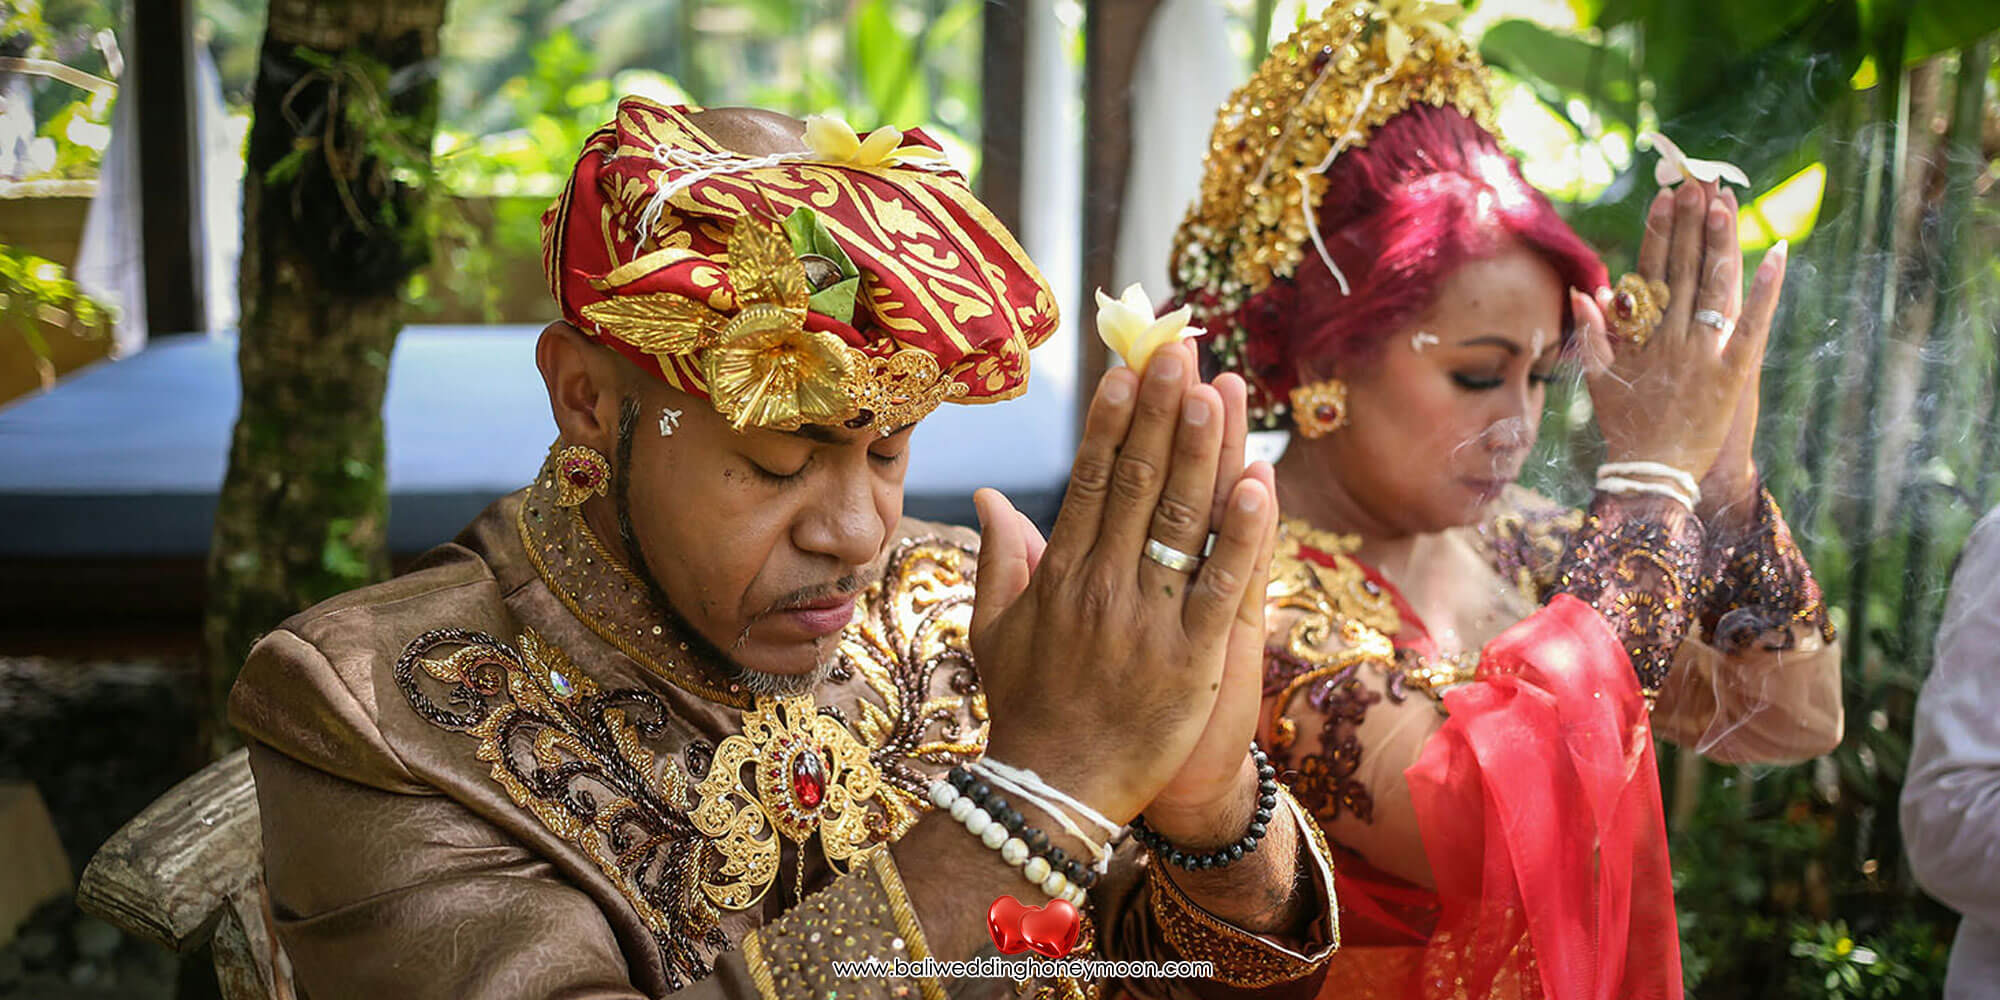 Tips of how to have a perfect planning for your wedding event in Bali